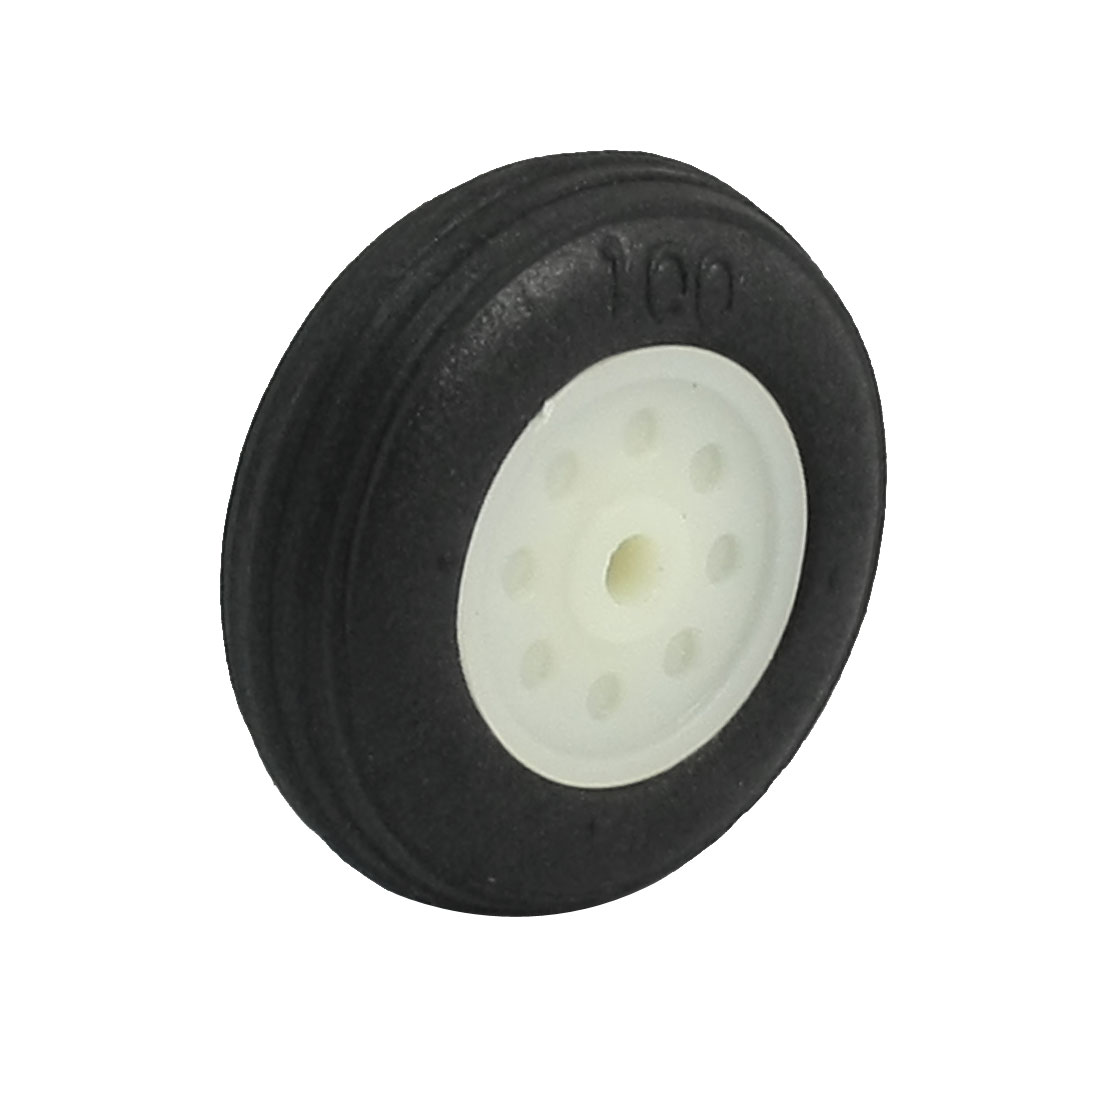 "DIY RC Airplane Plastic Hub 1"" Diameter Foam Tire PU Wheel"